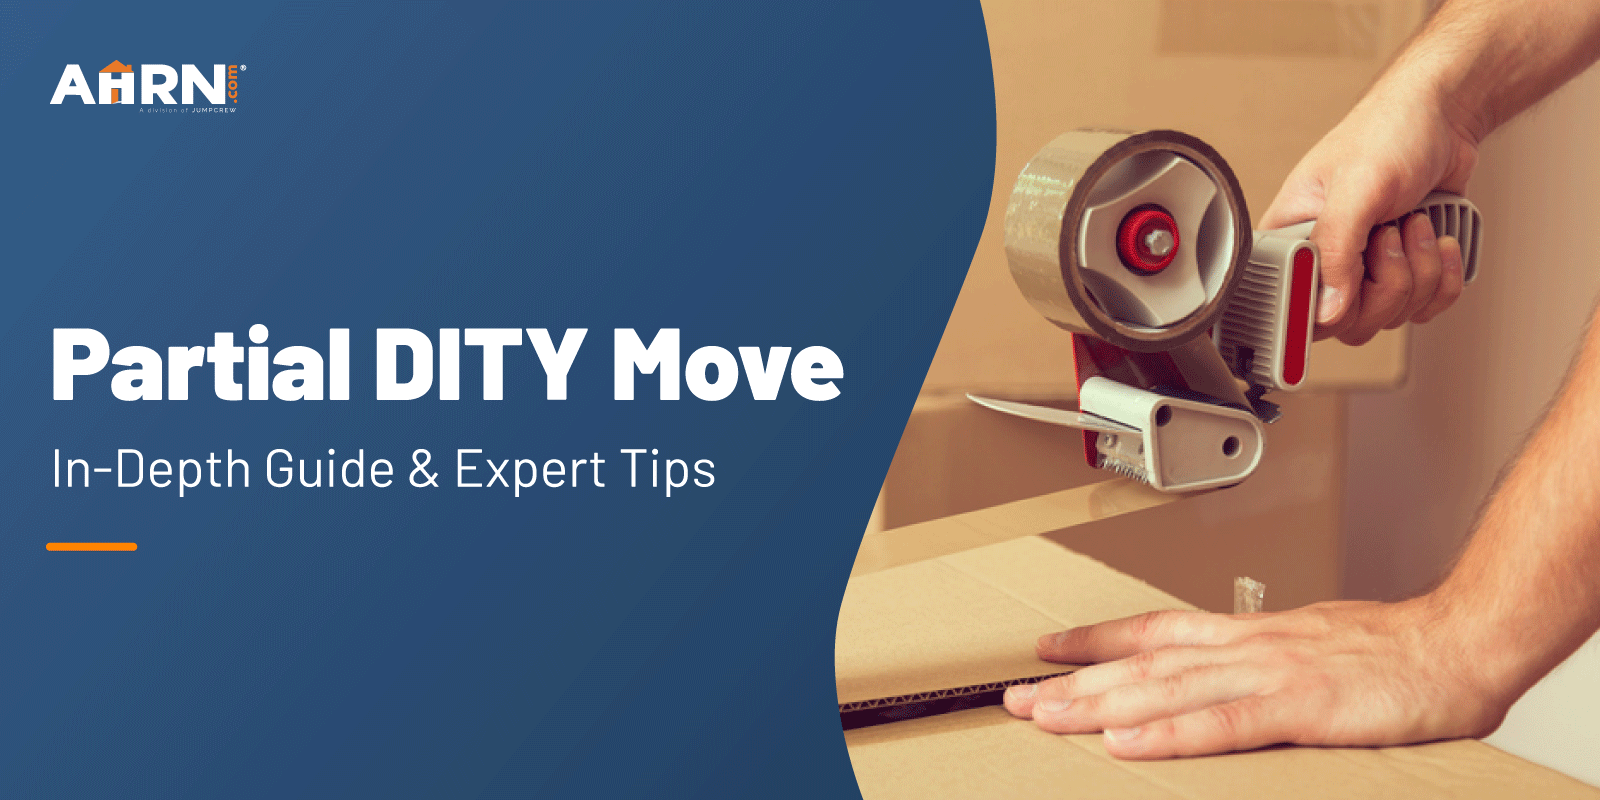 Partial DITY Move: In-Depth Guide & Expert Tips